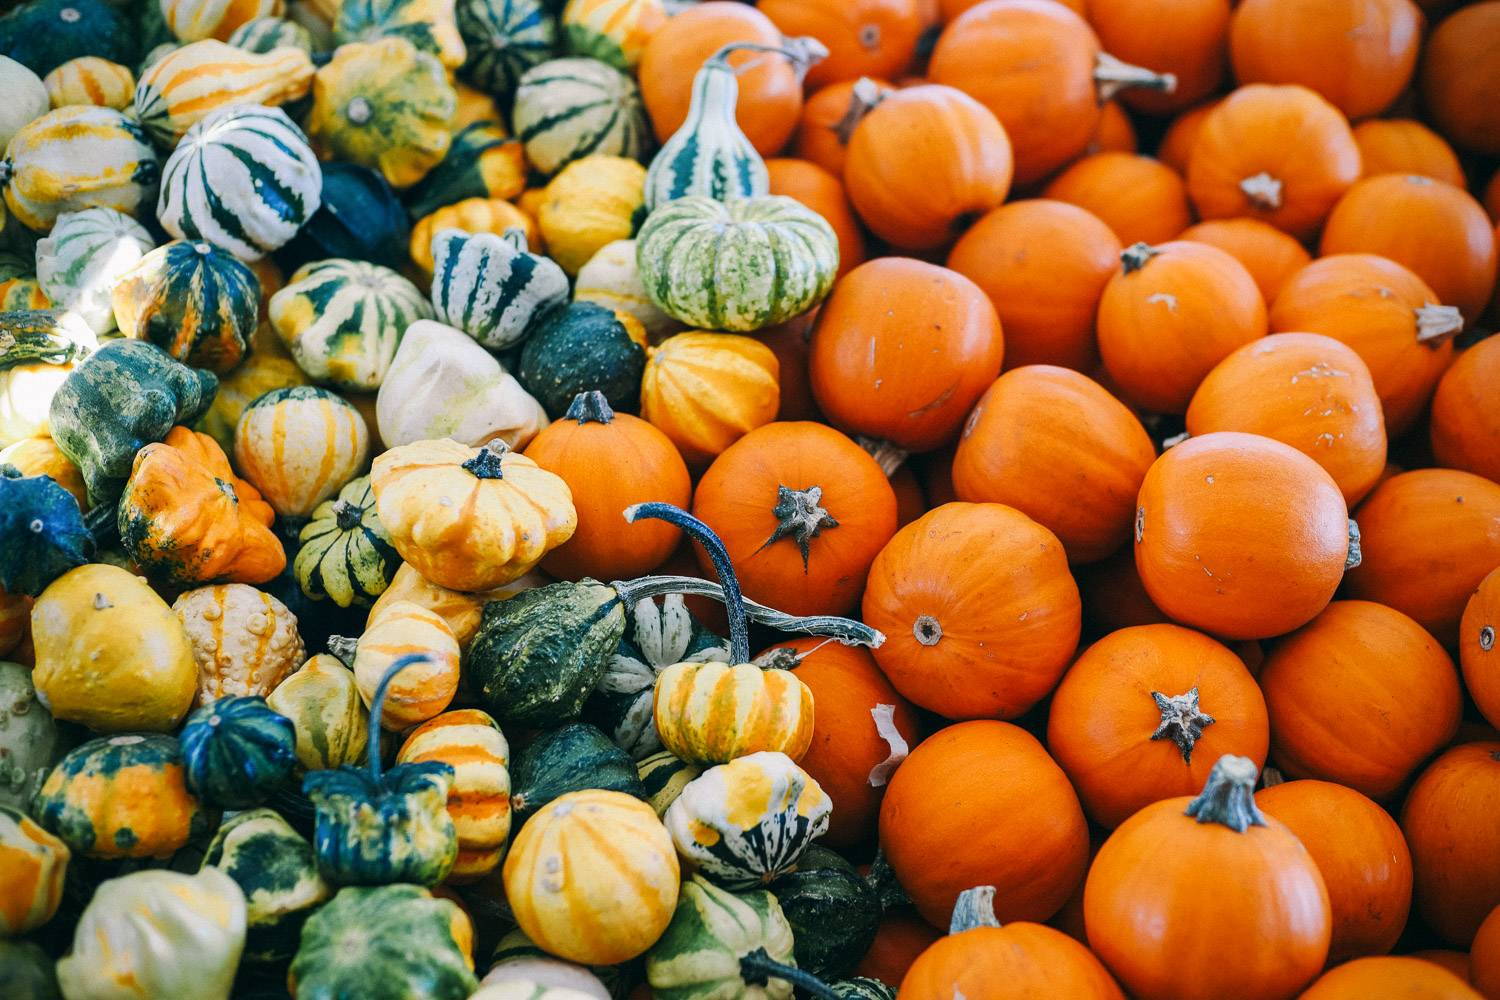 Image of delectable pumpkins and squash that are sold in greenmarkets.